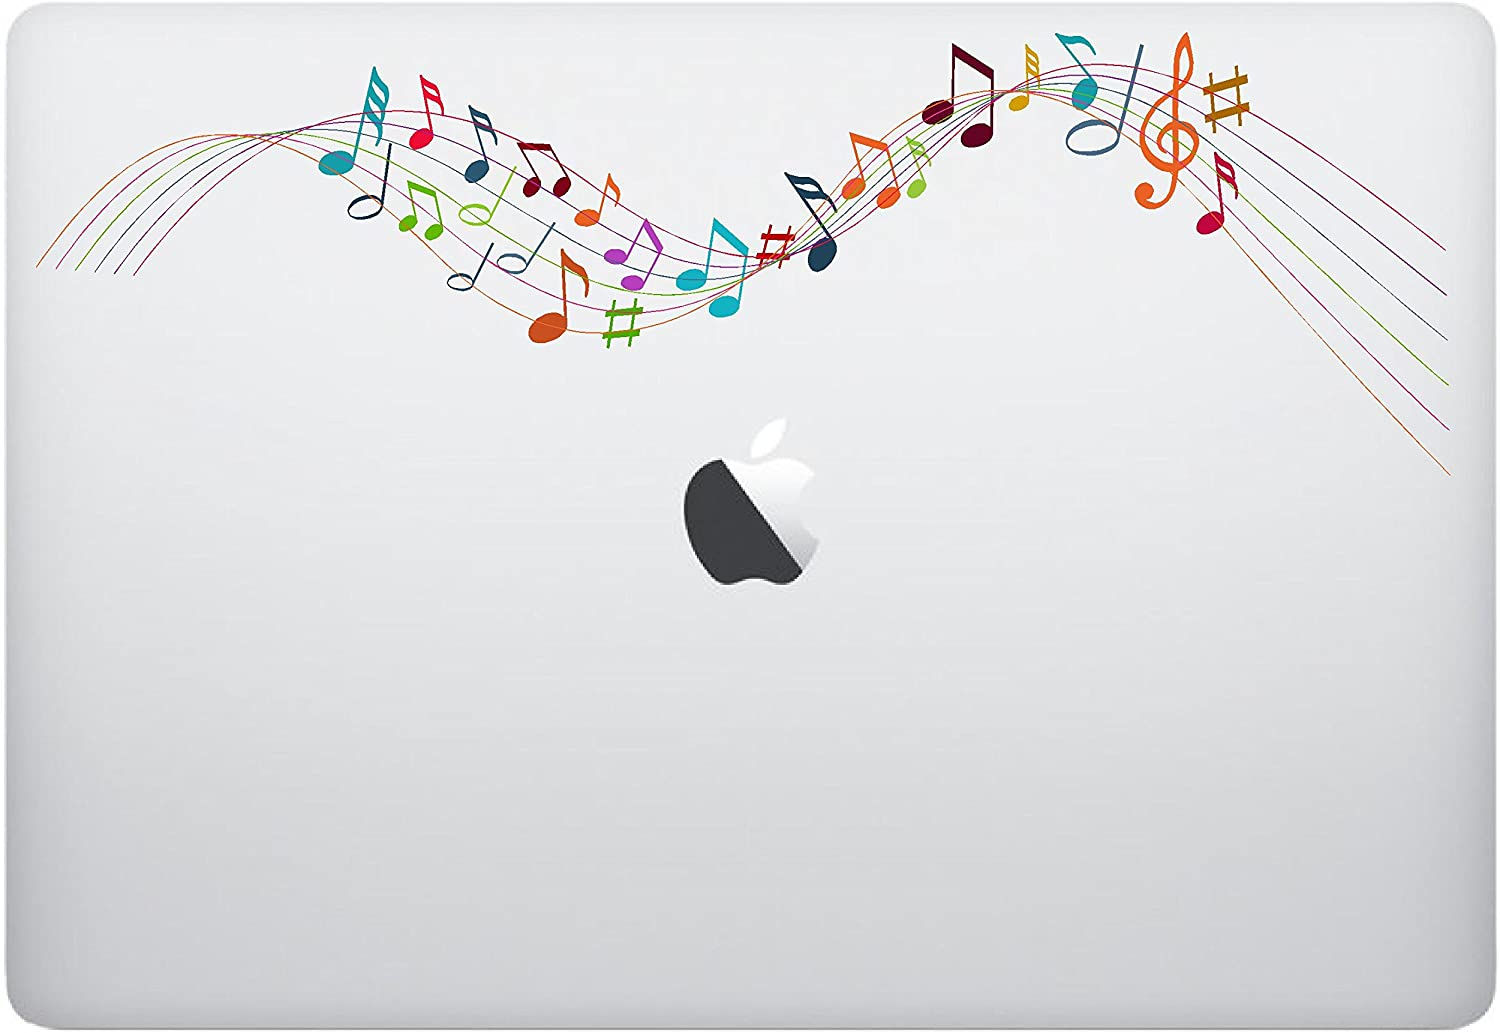 Epic Designs Laptop Sticker Decal - Colorful Music Notes - Cool Creative Skins Stickers